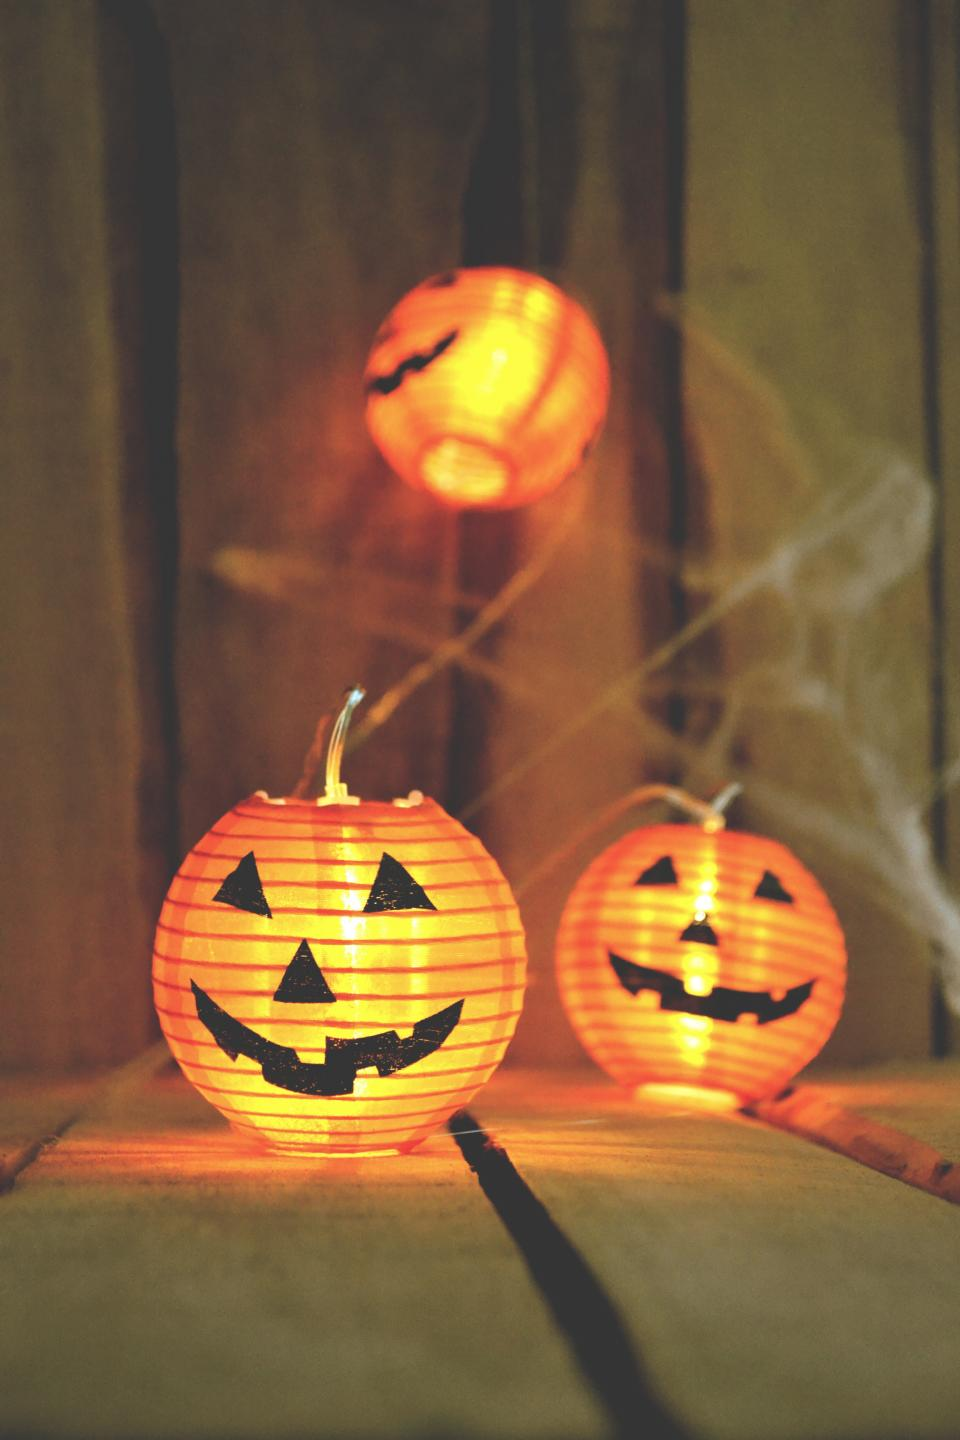 orange pumpkin halloween light night web wall floor